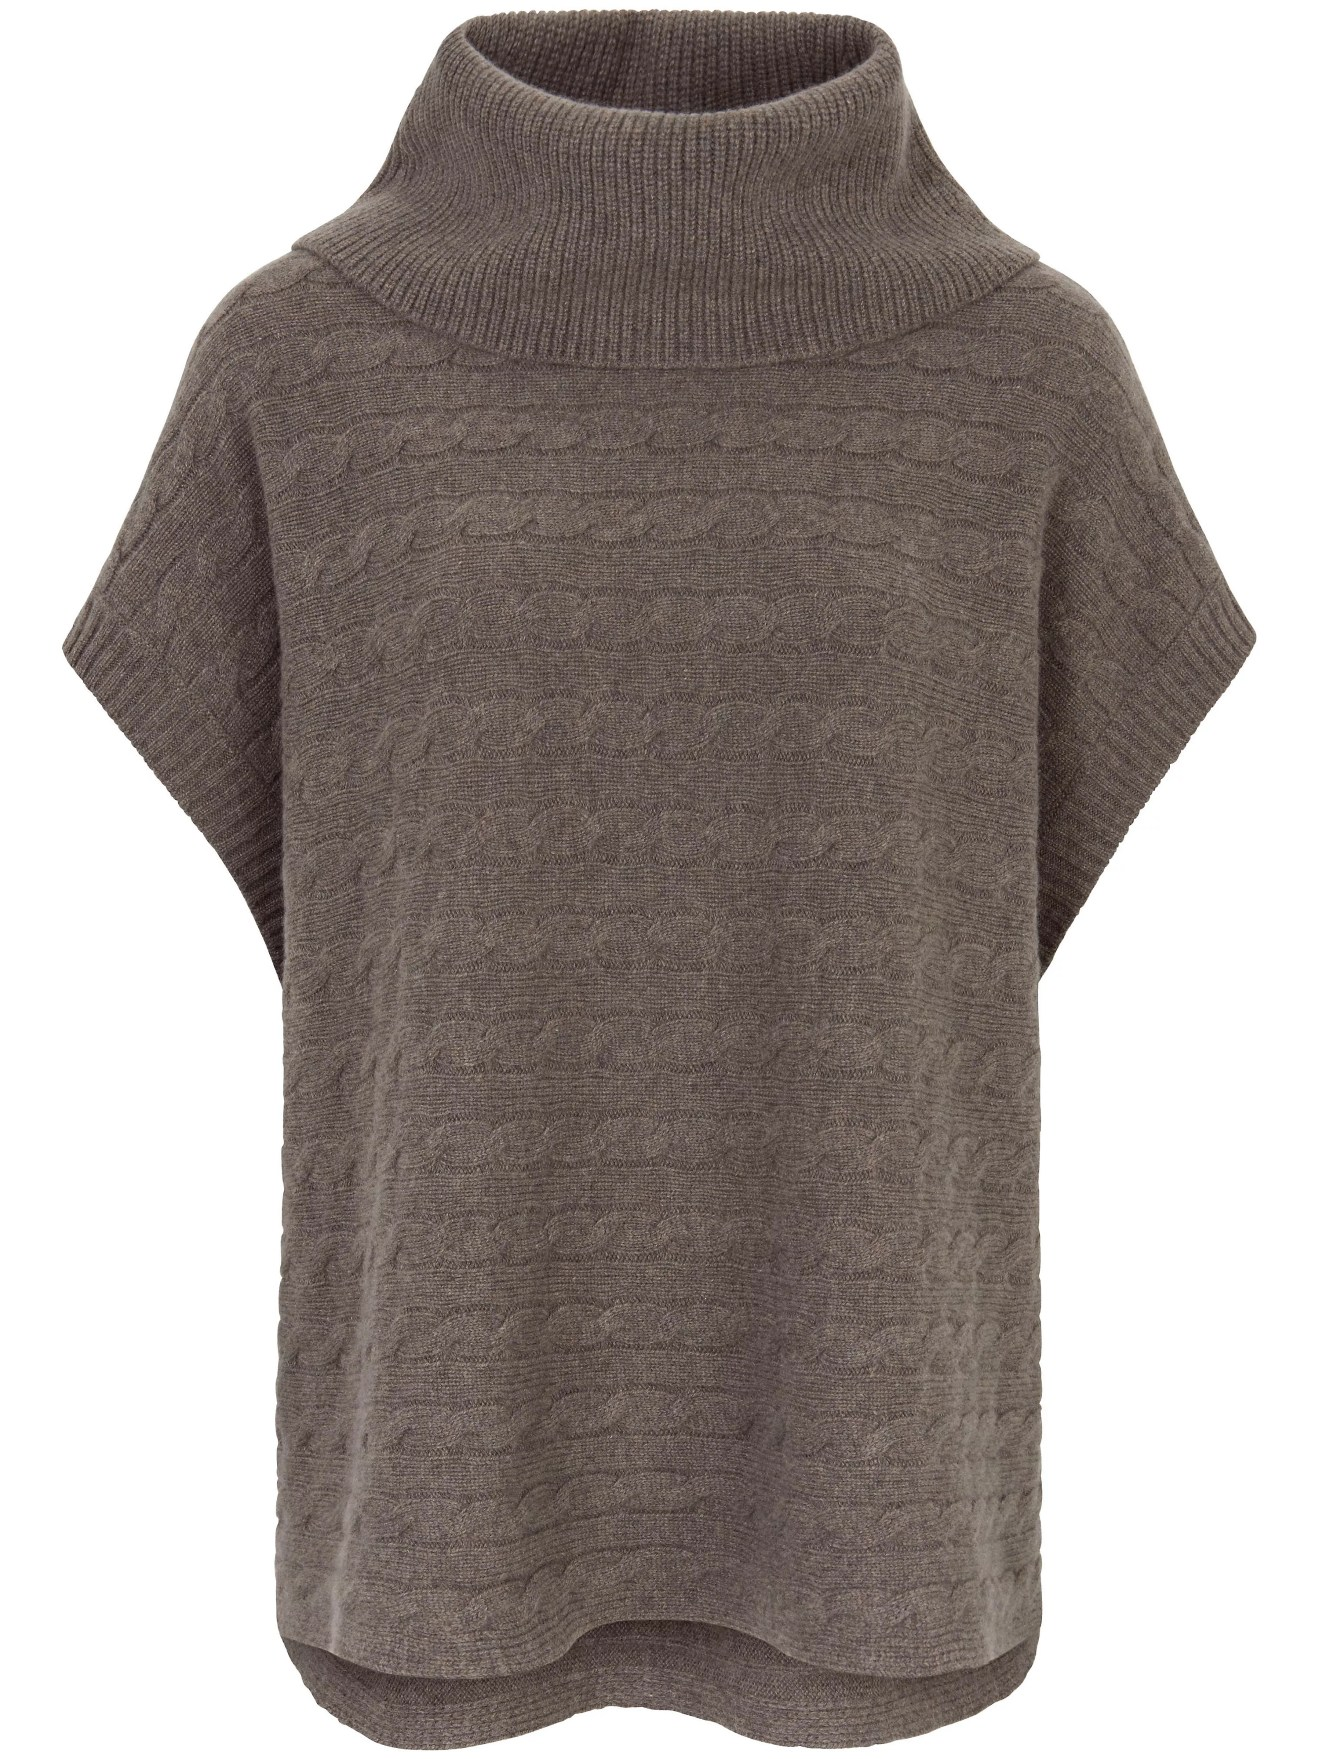 Poncho-style jumper include brown size: 20/22 Qody PCI-E Extension Cable: 1X to 16X Qody PCI-E Extension Cable: 1X to 16X  803158 PACK F 130717 125555